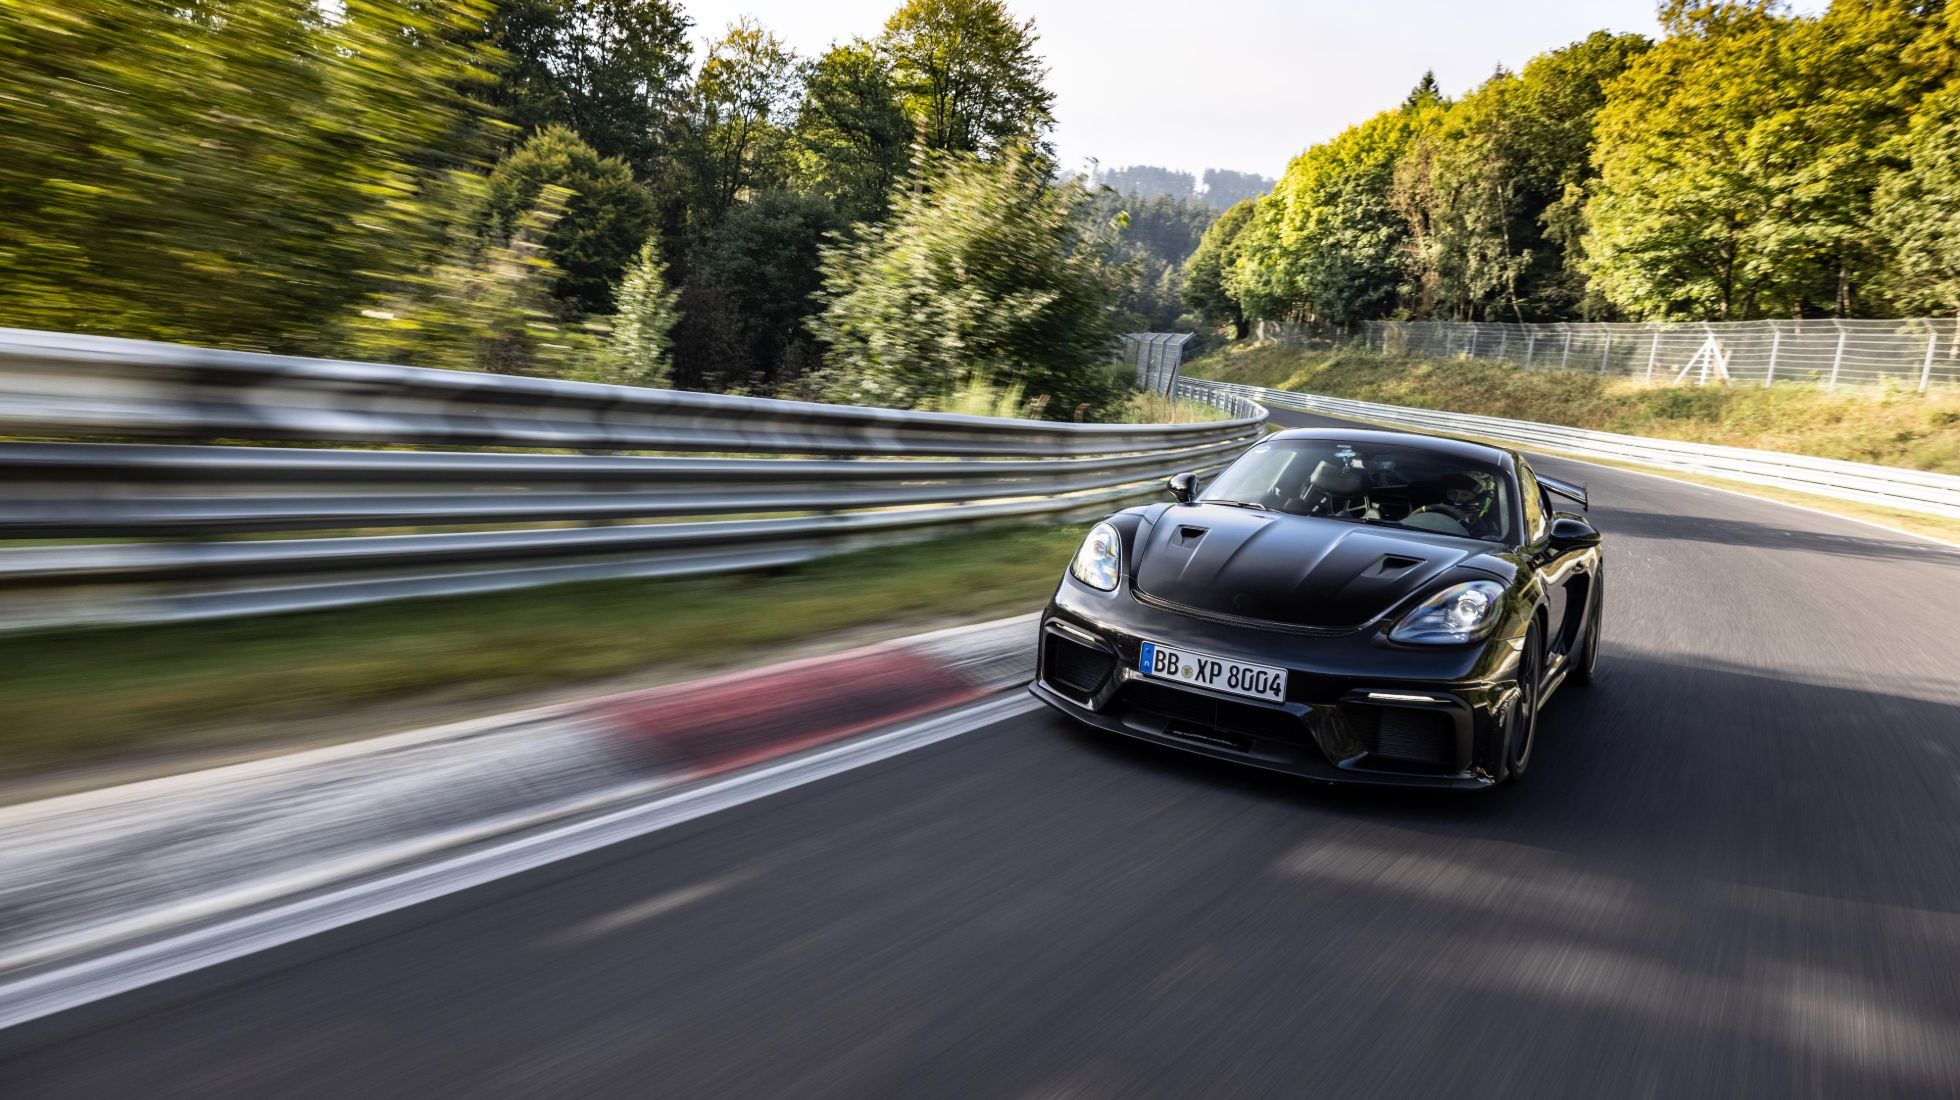 Porsche is fine-tuning its Cayman GT4 RS